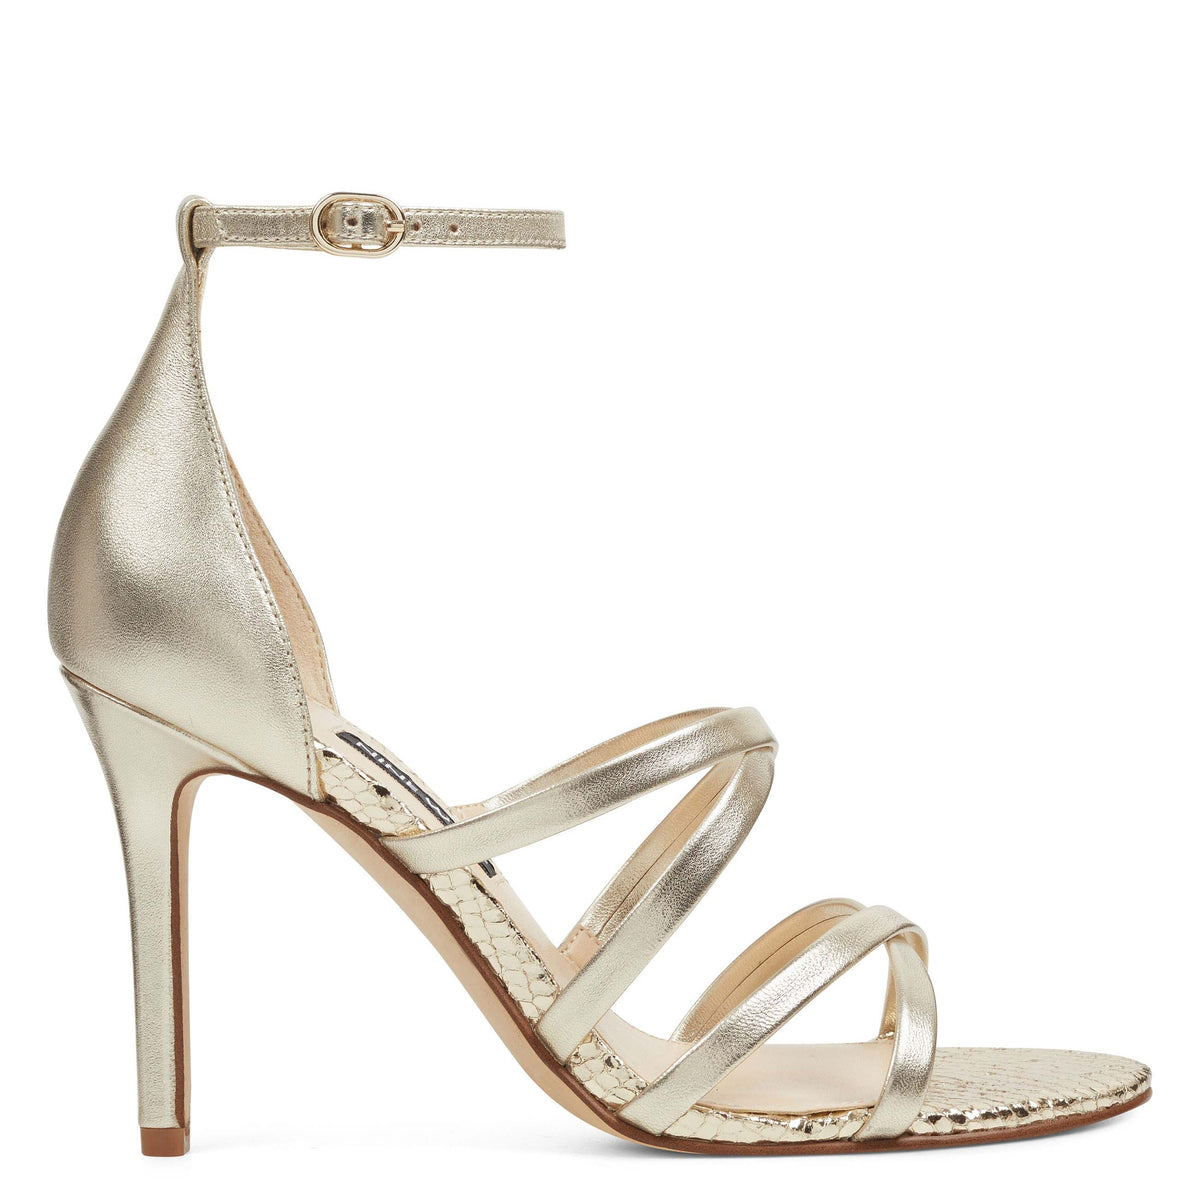 Malina Open Toe Sandals